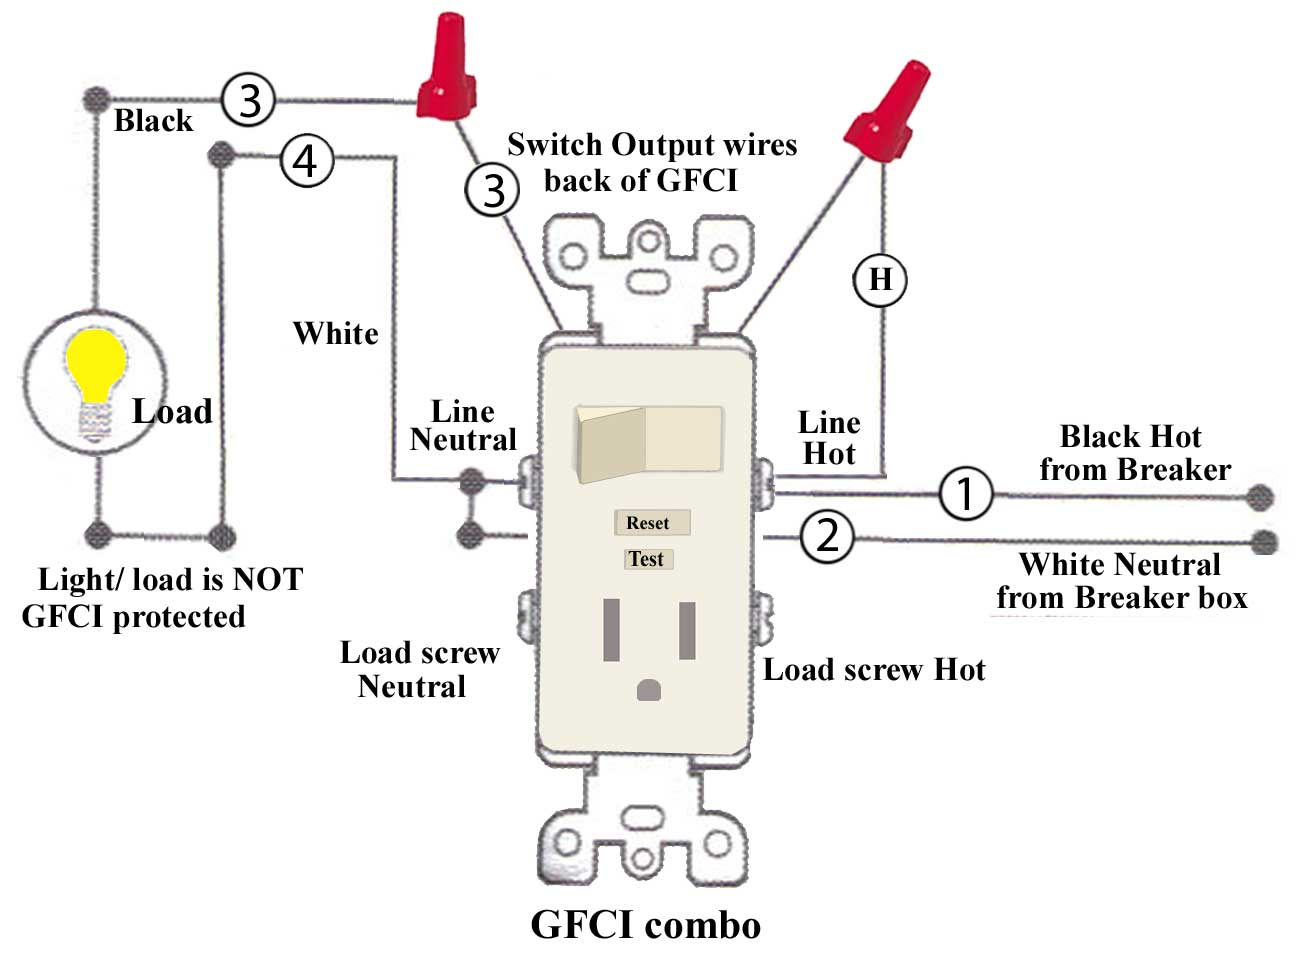 Gfci Outlet Schematic Wiring Diagram Name How To Wire Circuits From Schematics Installing Simple No Ground